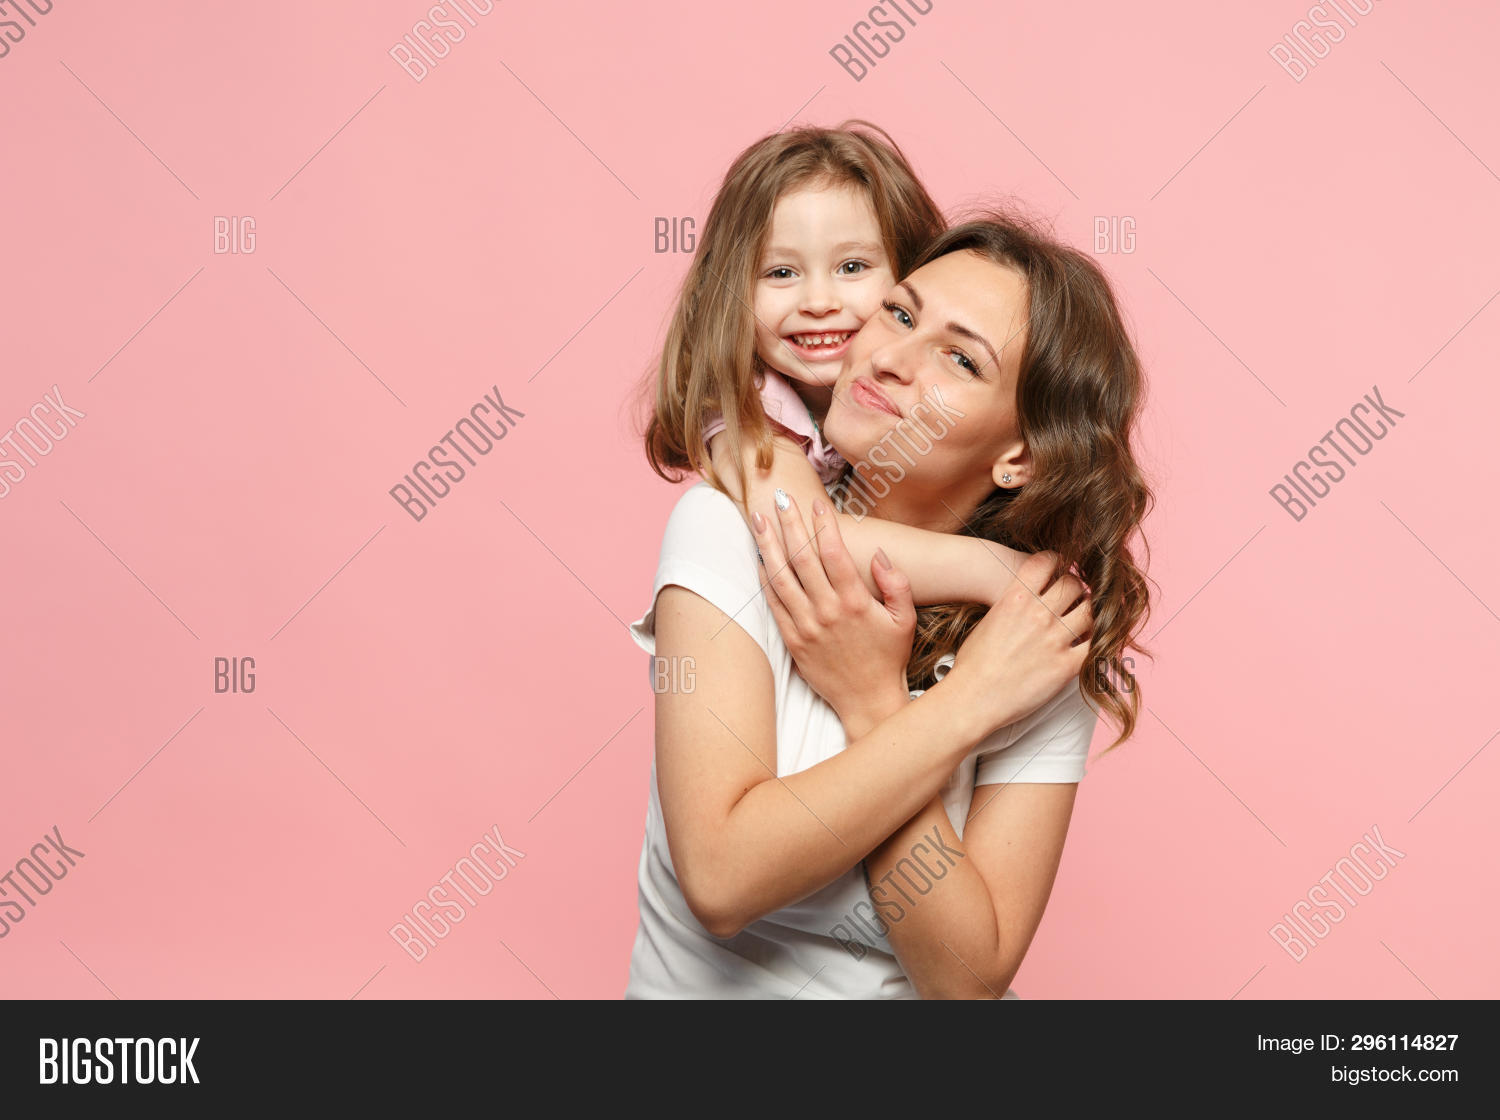 baby,back,backdrop,background,behind,child,children,color,cool,cuddle,daughter,embrace,face,family,feelings,female,feminine,fondness,friendship,game,gesture,girl,happiness,happy,hug,indoors,international,kid,kiss,leisure,lifestyle,mom,mommy,mother,parent,people,person,play,preschooler,relationship,shirt,small,smile,summer,tenderness,together,togetherness,white,woman